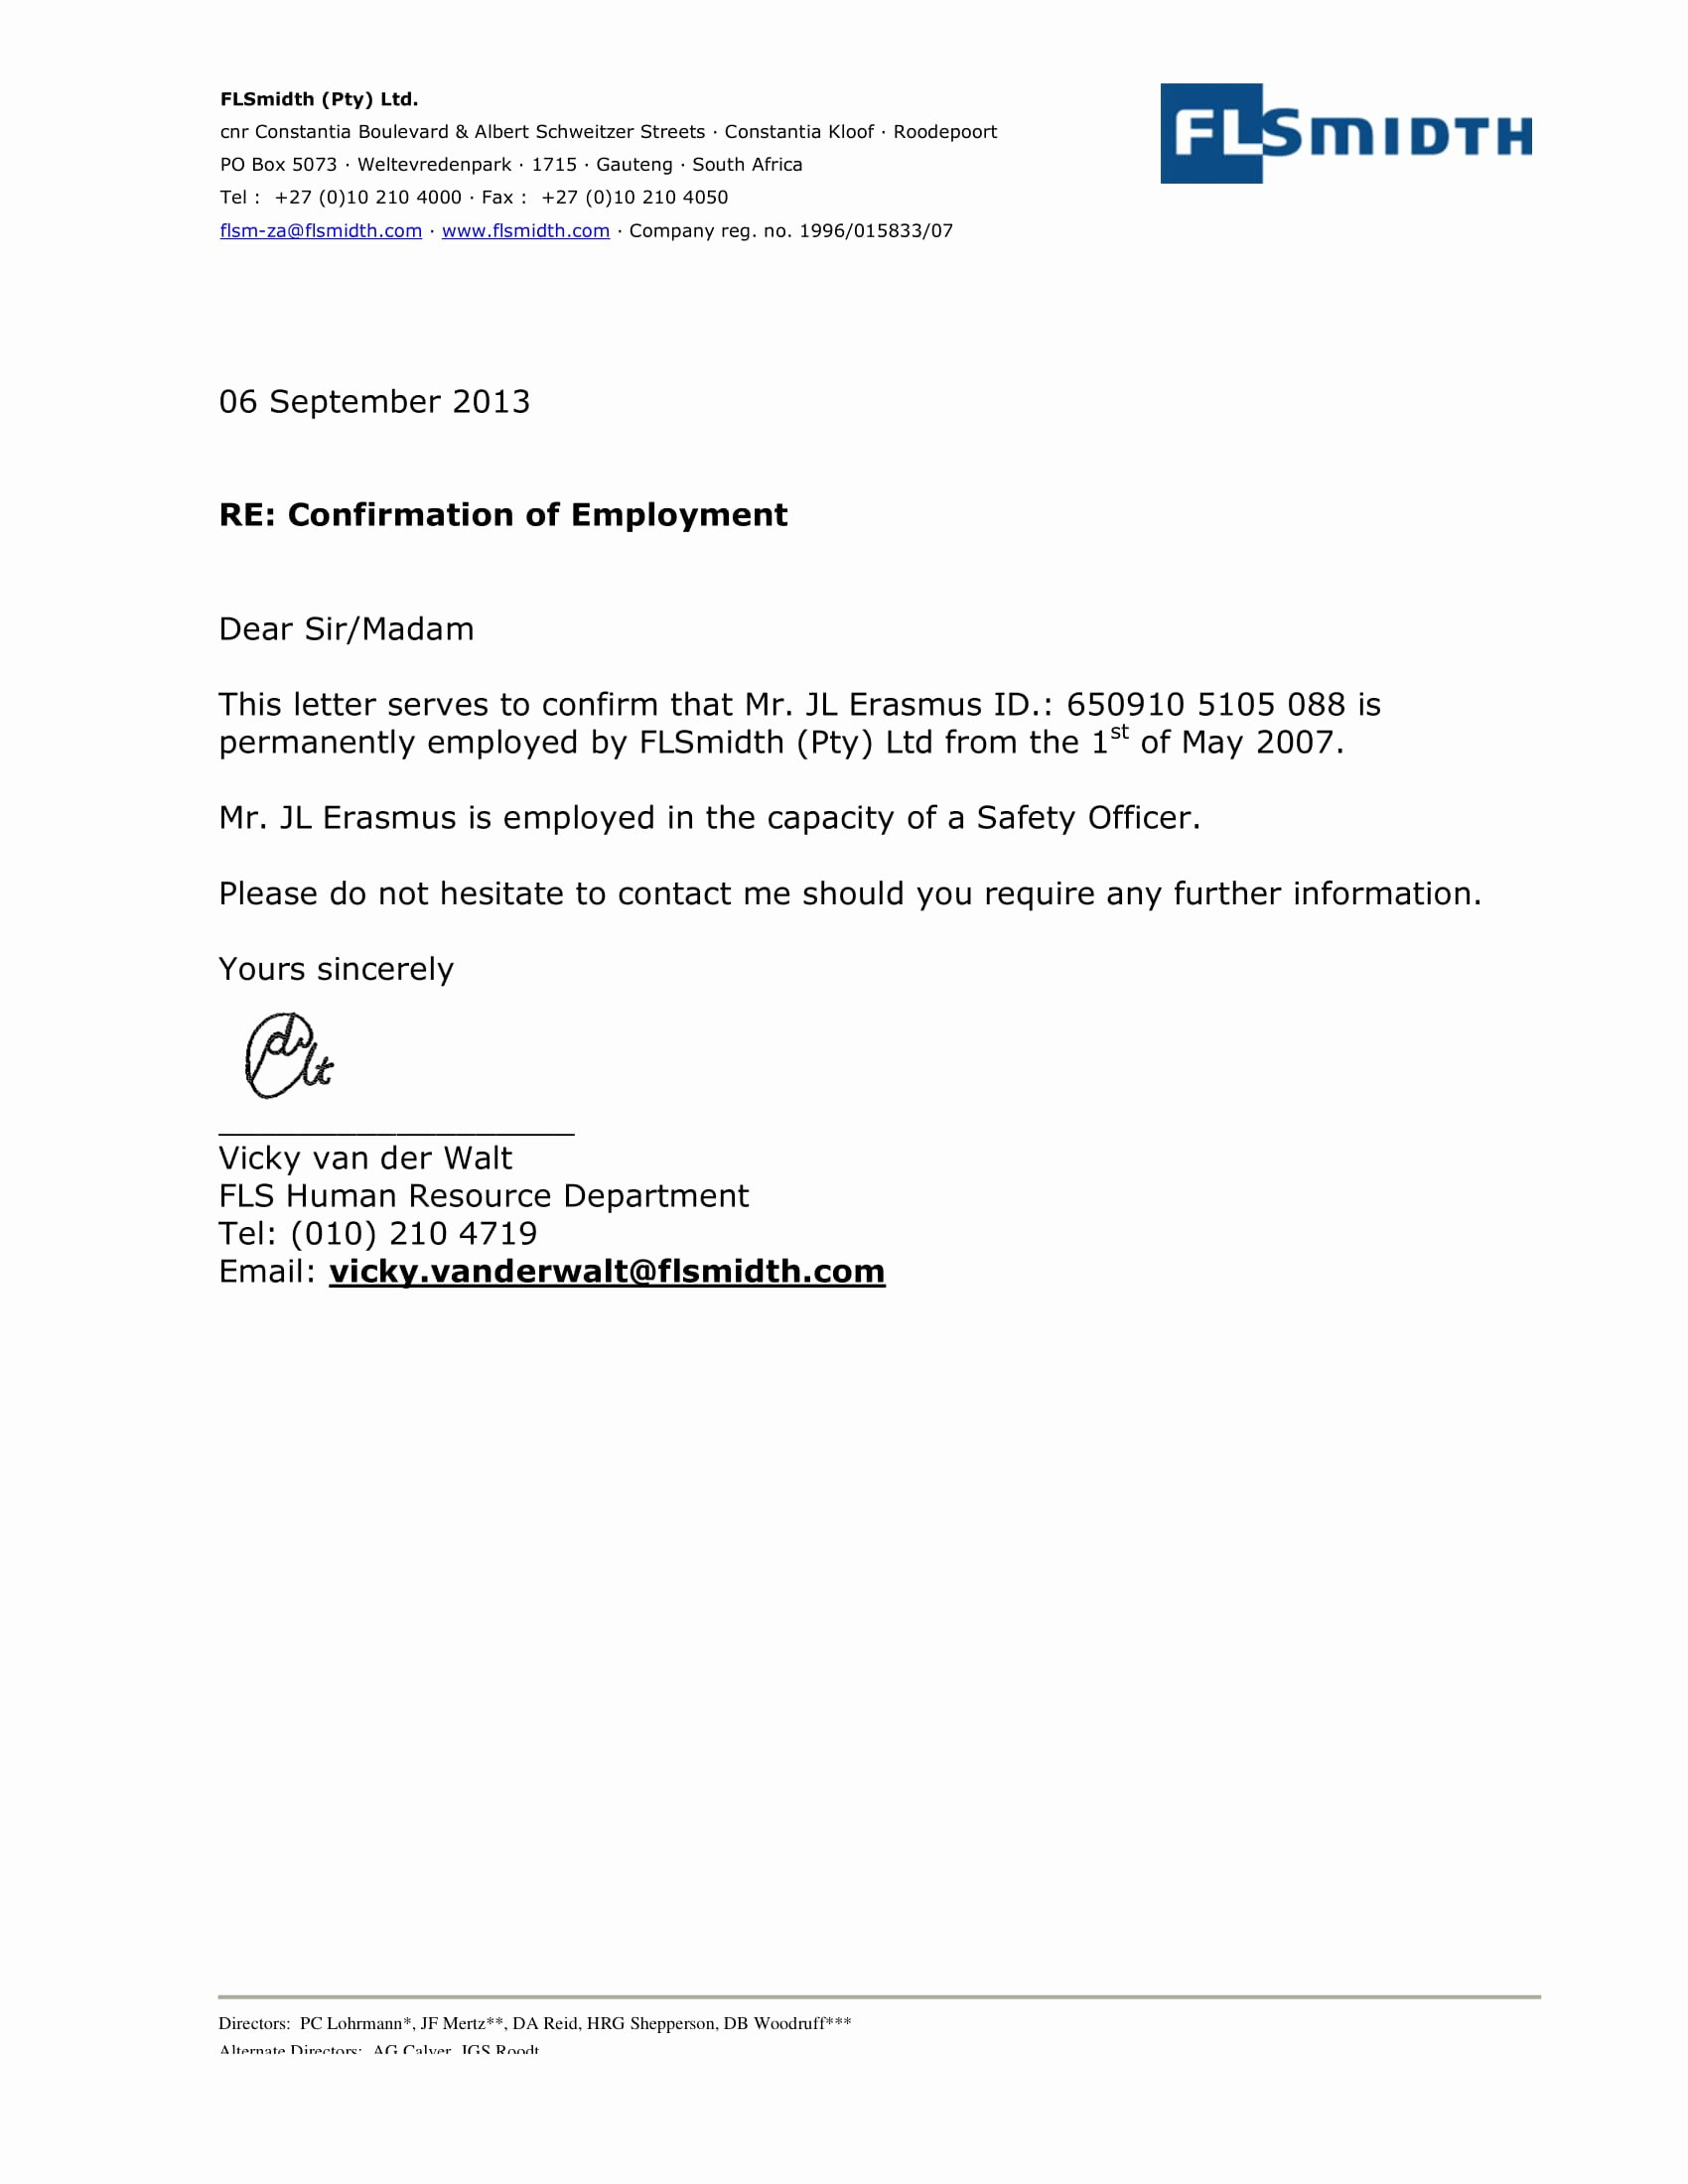 Sample Of Job Letter Best Of 14 Employment Verification Letter Examples Pdf Doc